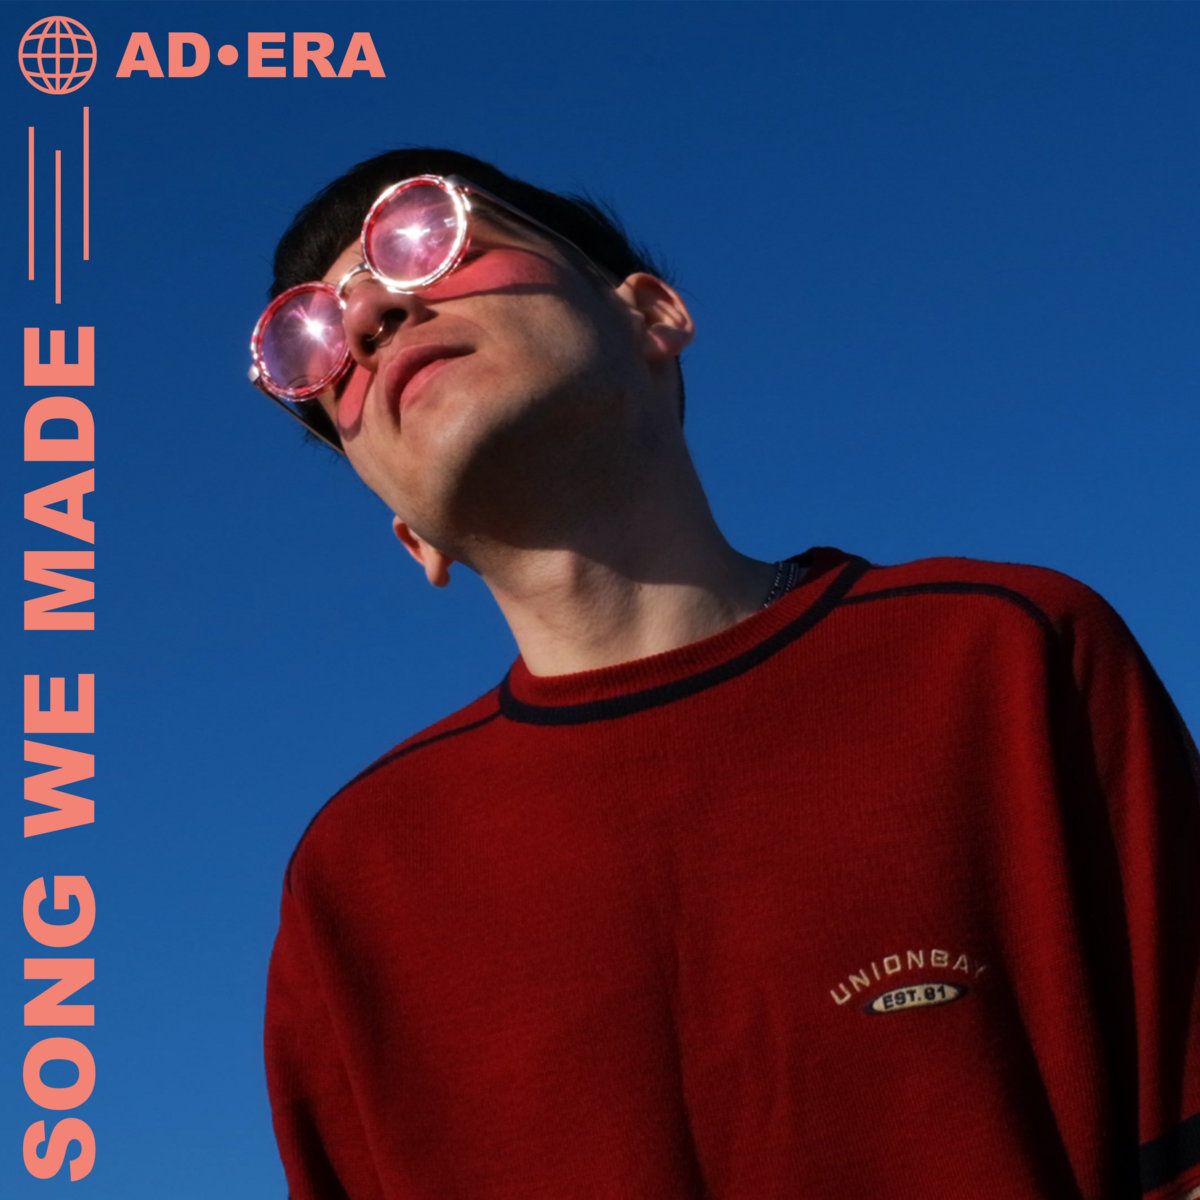 Song We Made by ad•era